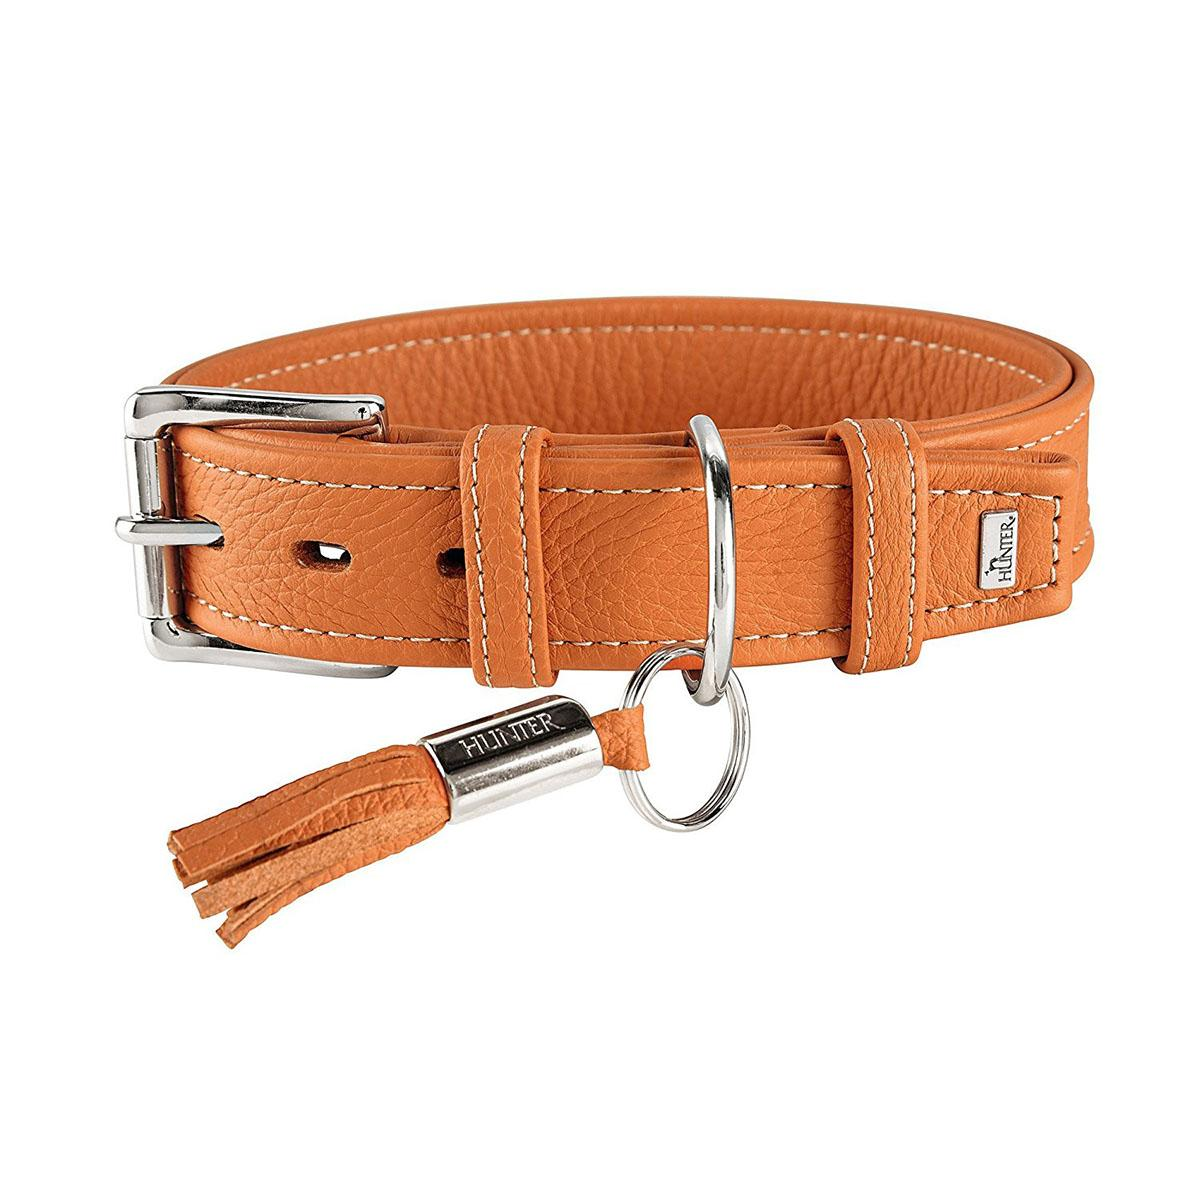 Cannes Leather Dog Collar by HUNTER - Orange